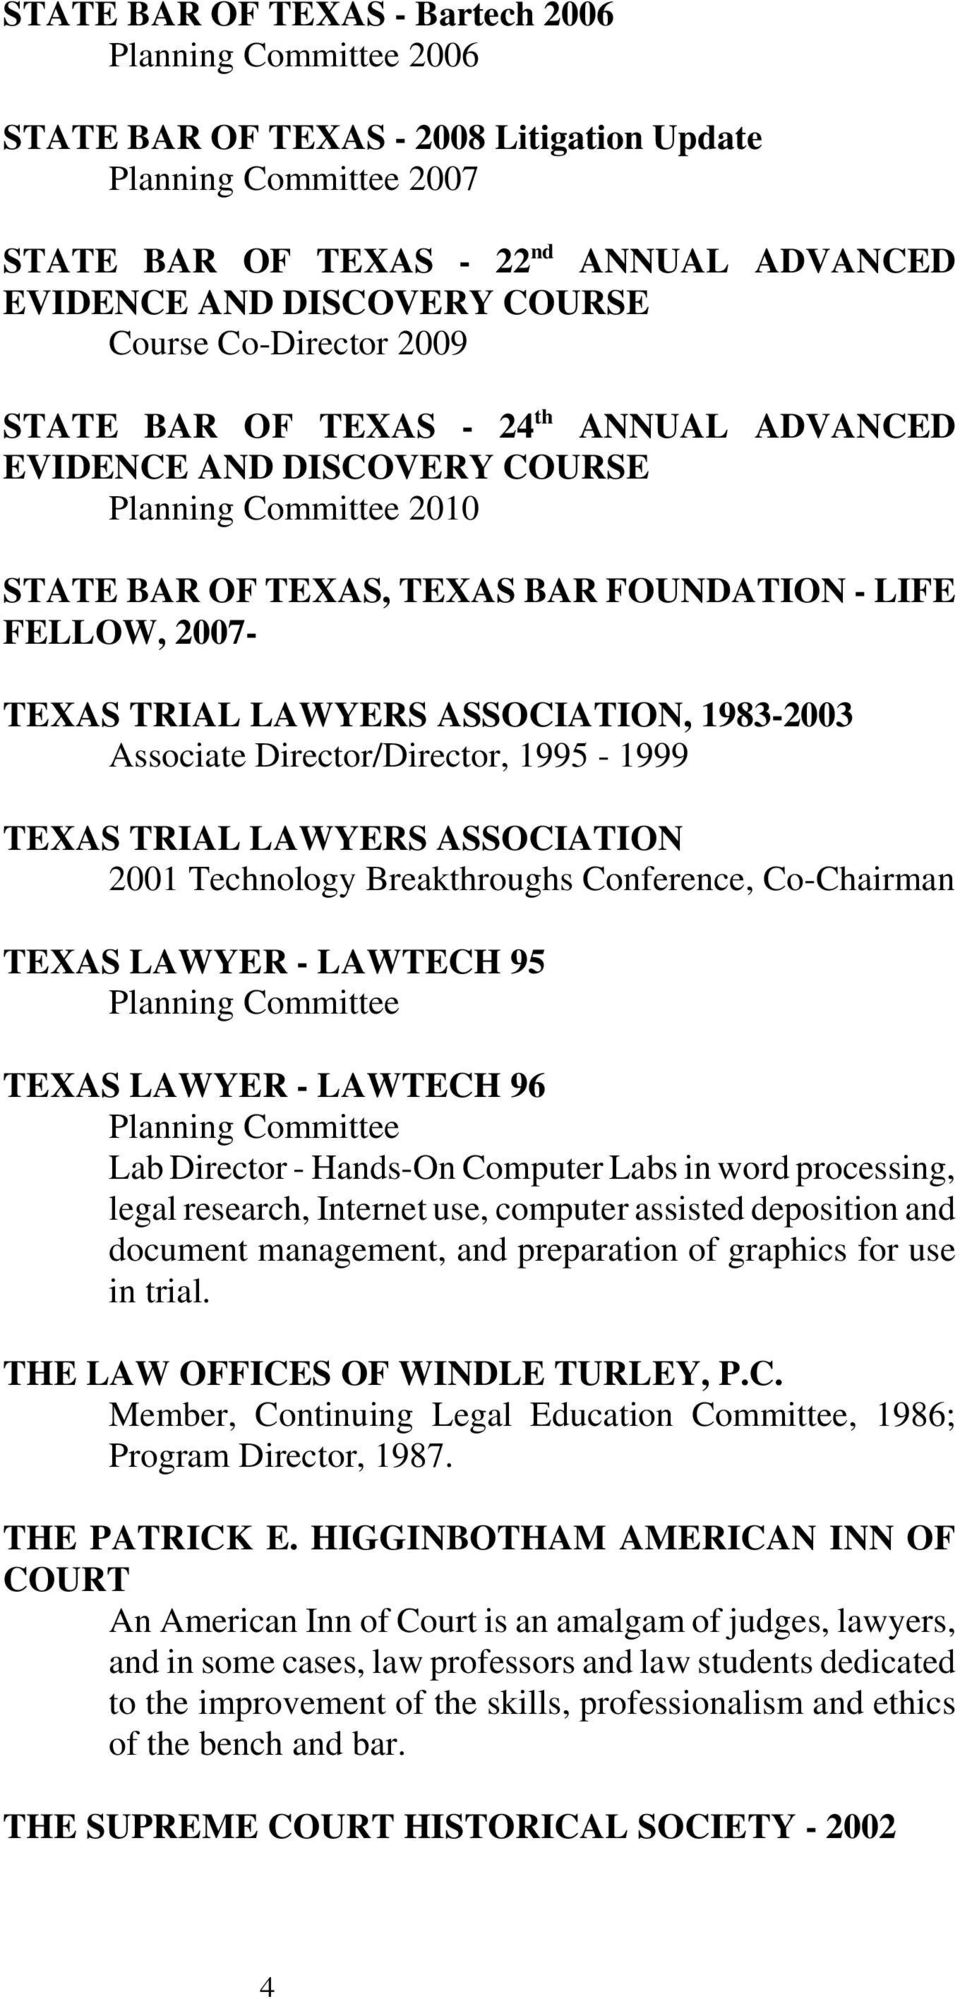 LAWYERS ASSOCIATION, 1983-2003 Associate Director/Director, 1995-1999 TEXAS TRIAL LAWYERS ASSOCIATION 2001 Technology Breakthroughs Conference, Co-Chairman TEXAS LAWYER - LAWTECH 95 Planning